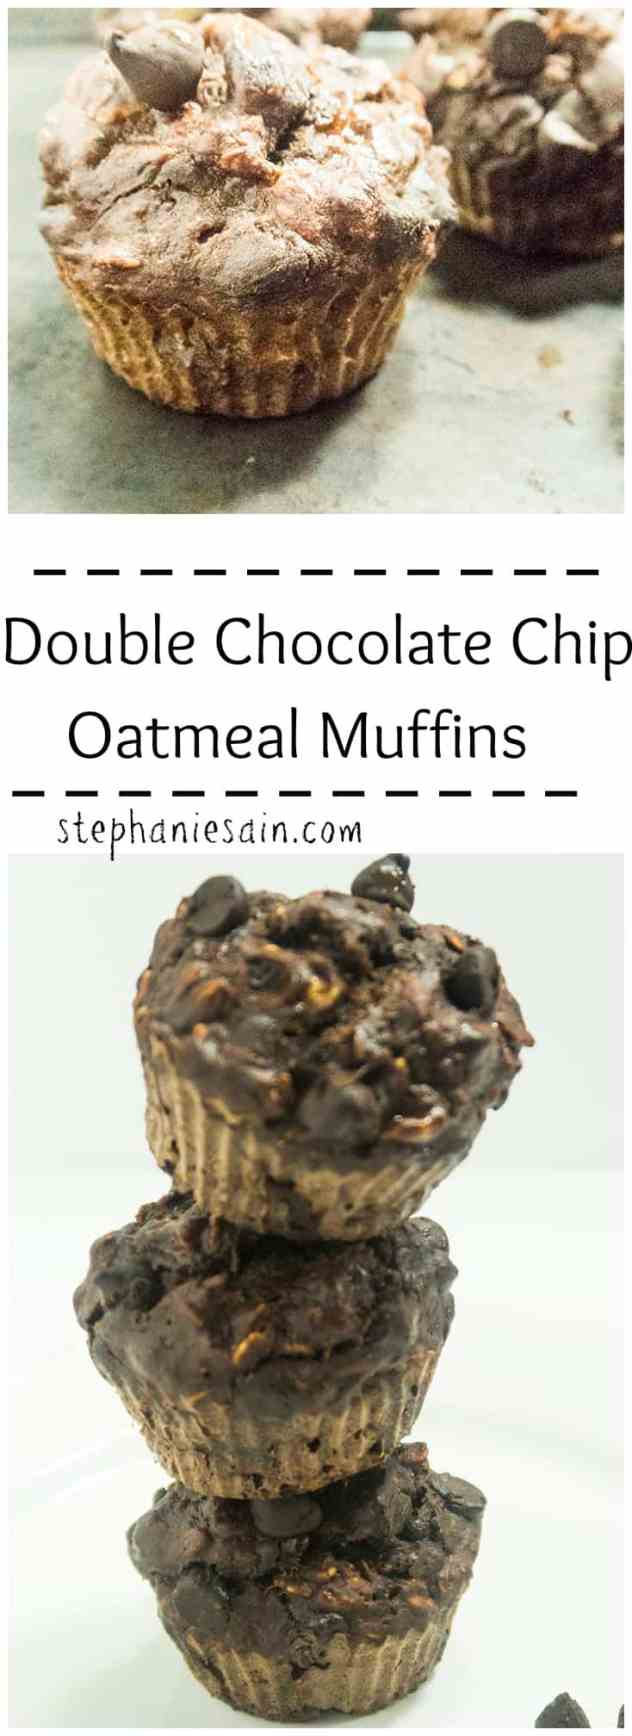 Double Chocolate Chip Oatmeal Muffins are a healthier tasty option perfect for breakfast or snacking.No refined sugars added.Gluten Free & Vegetarian.